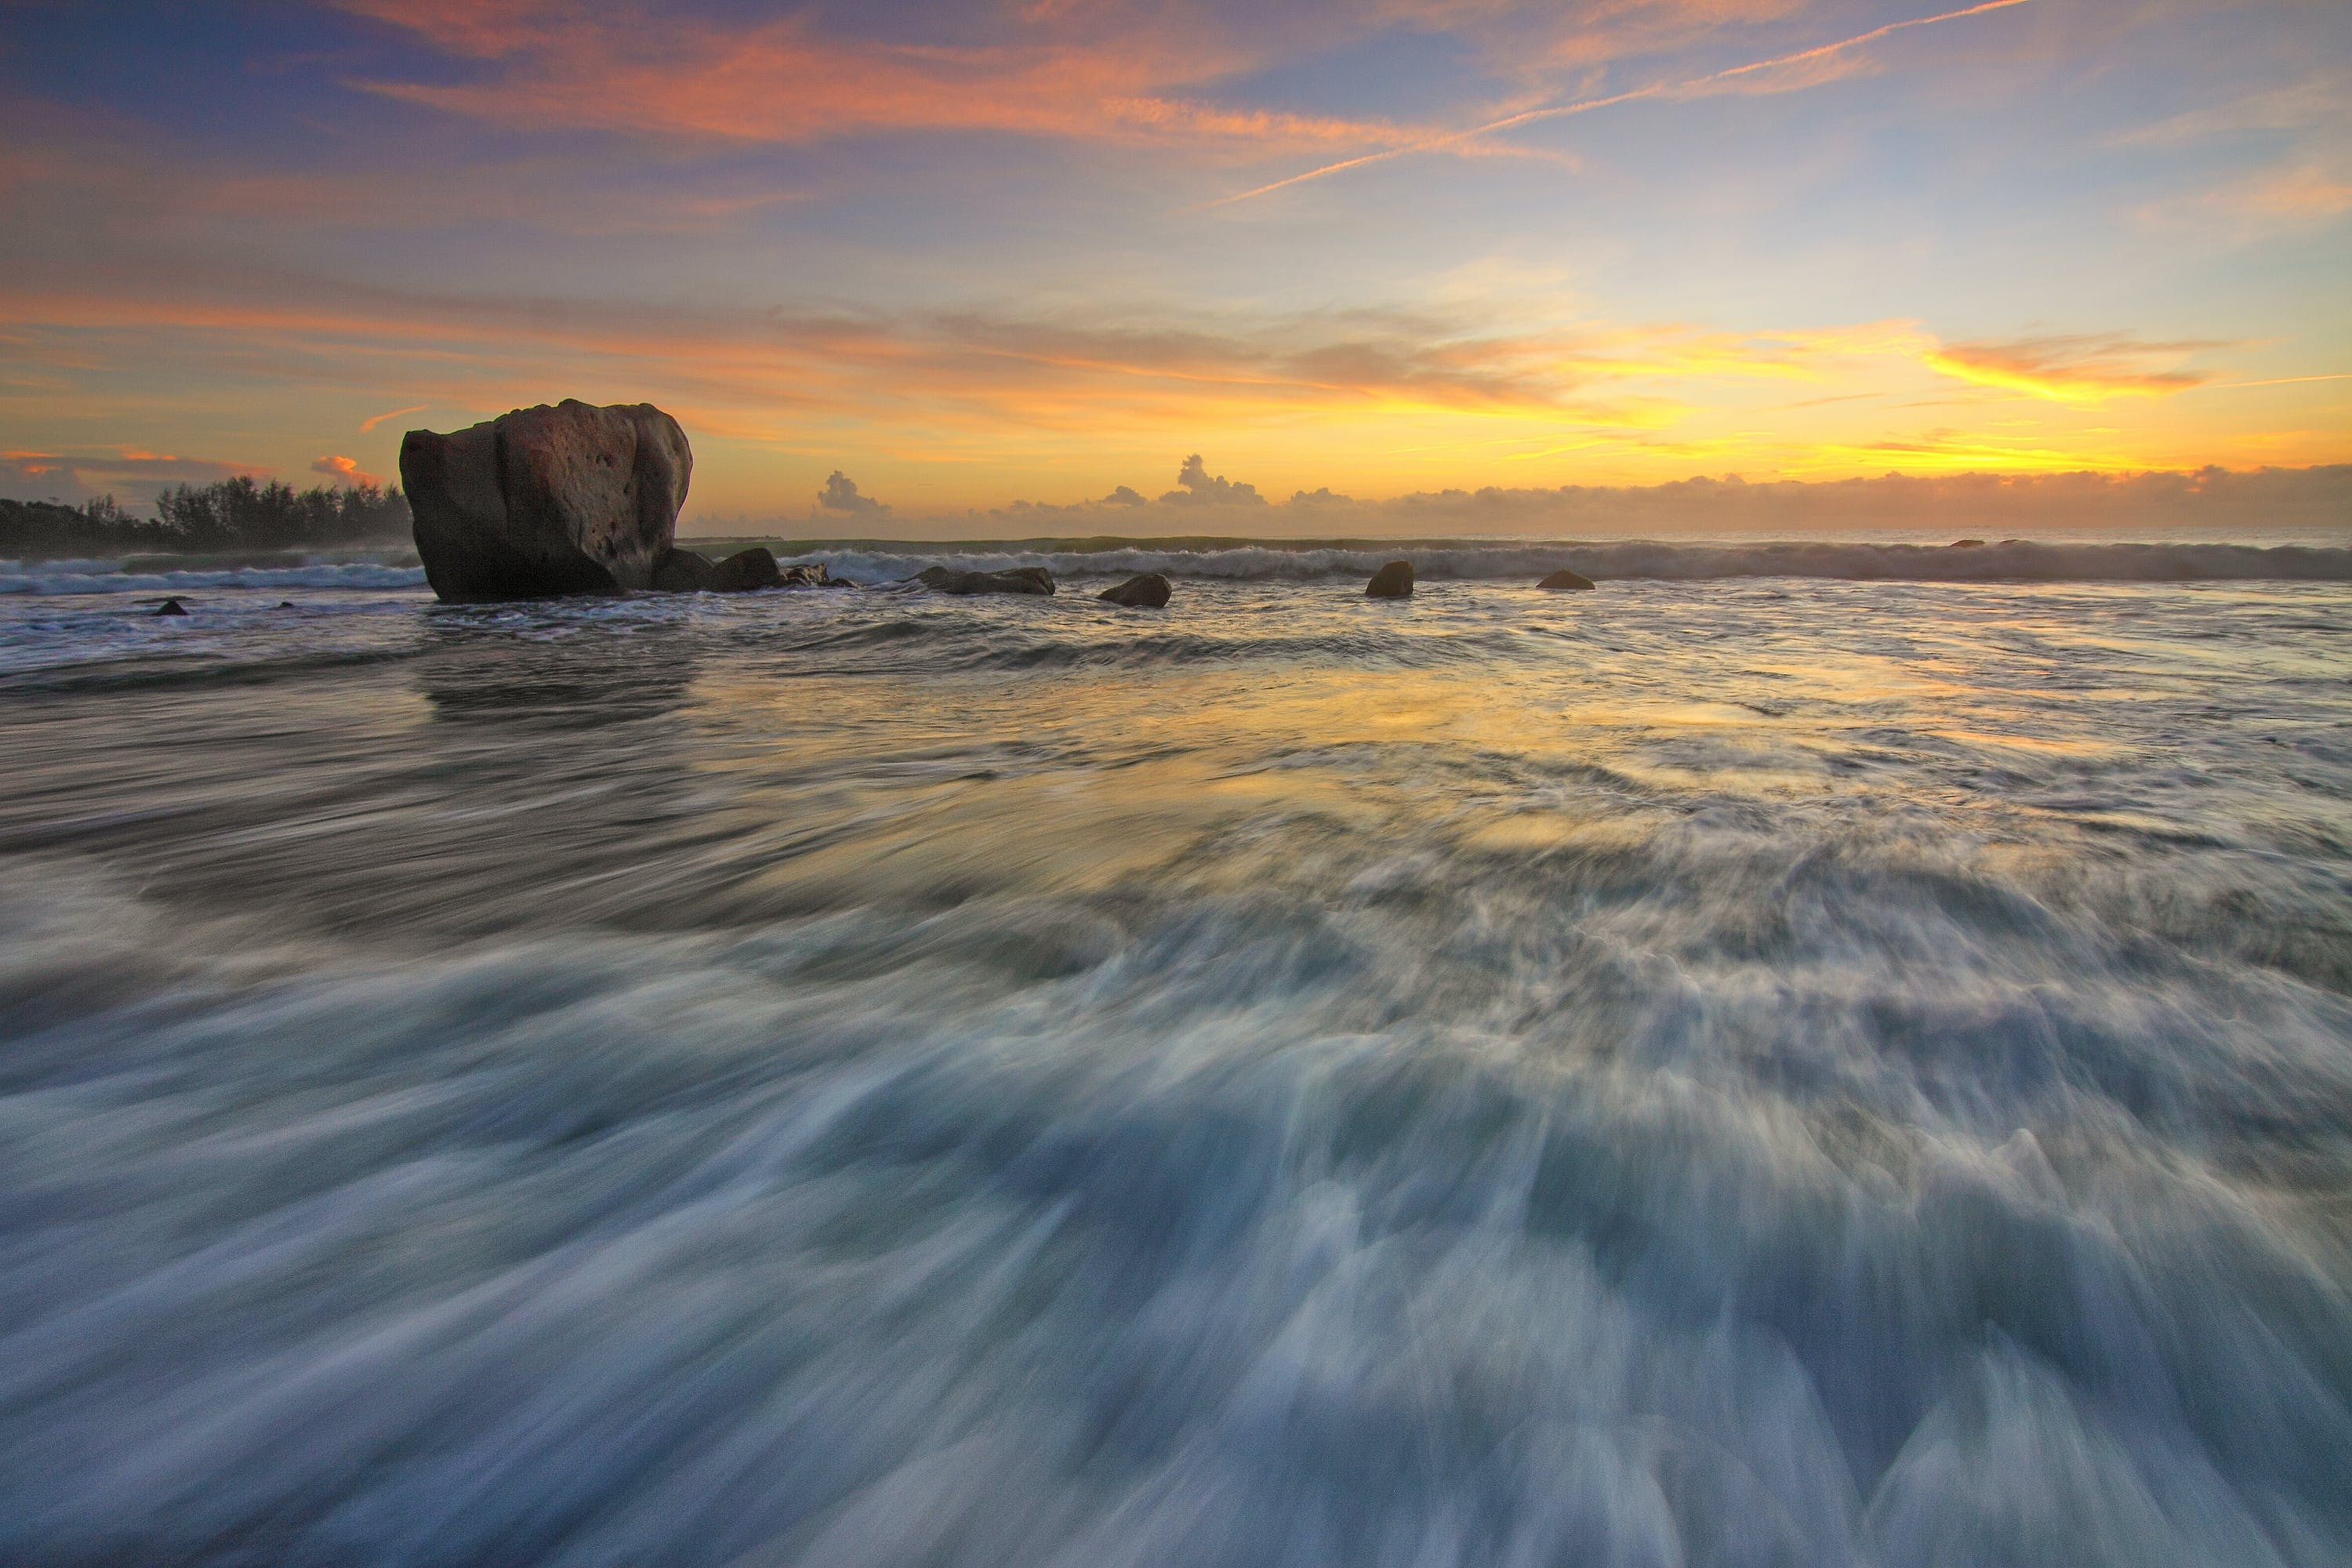 Time-lapse Photography of Body of Water